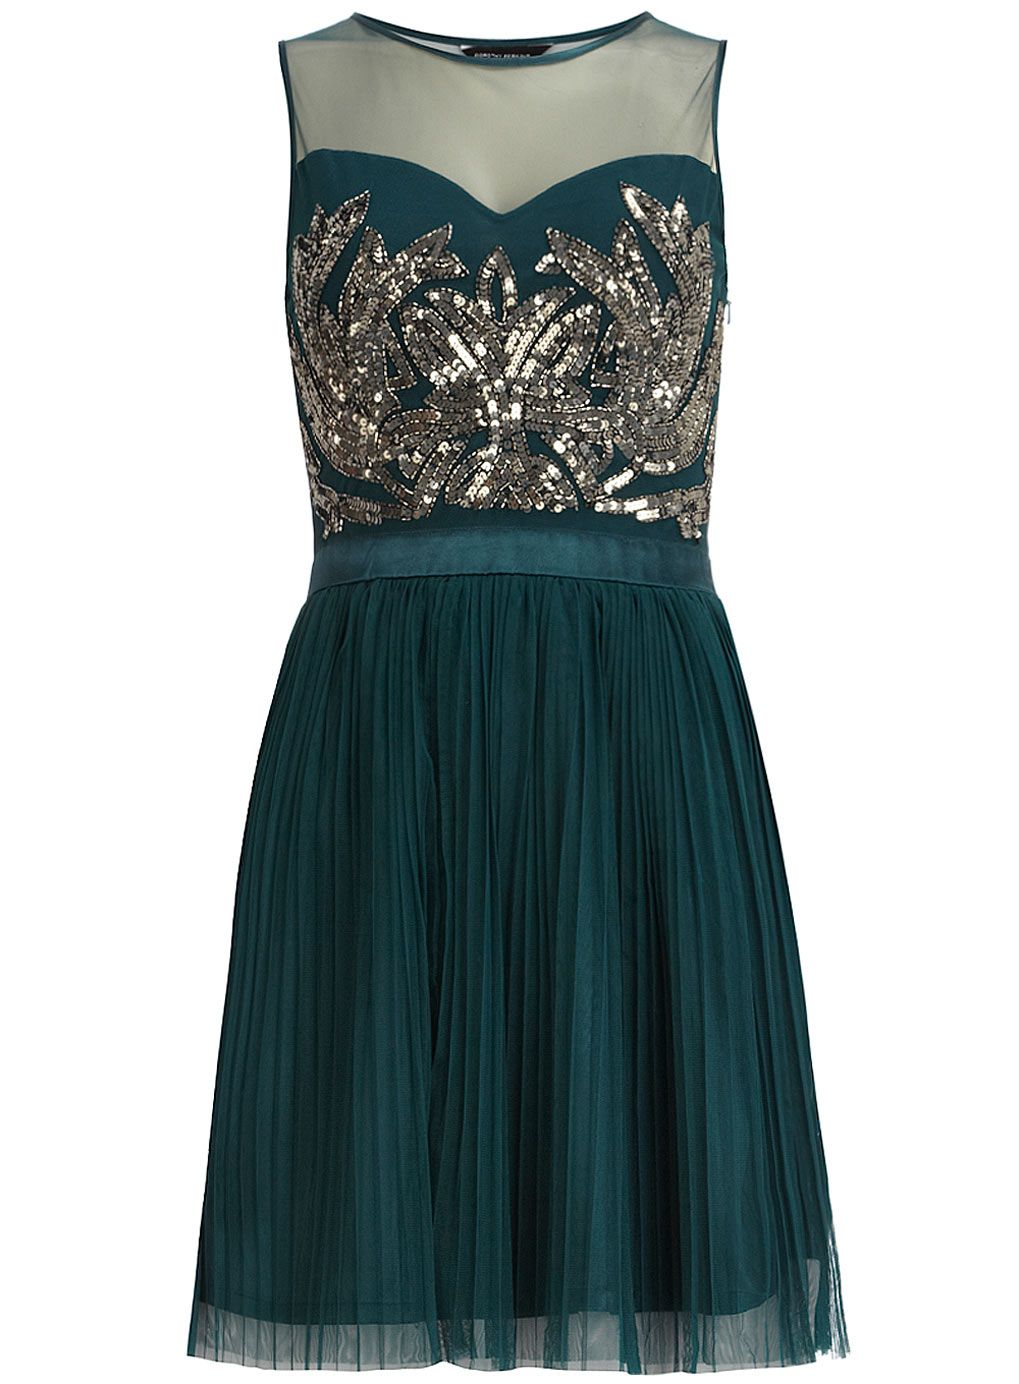 Pin by natalie trevinohettena on wearable pinterest teal